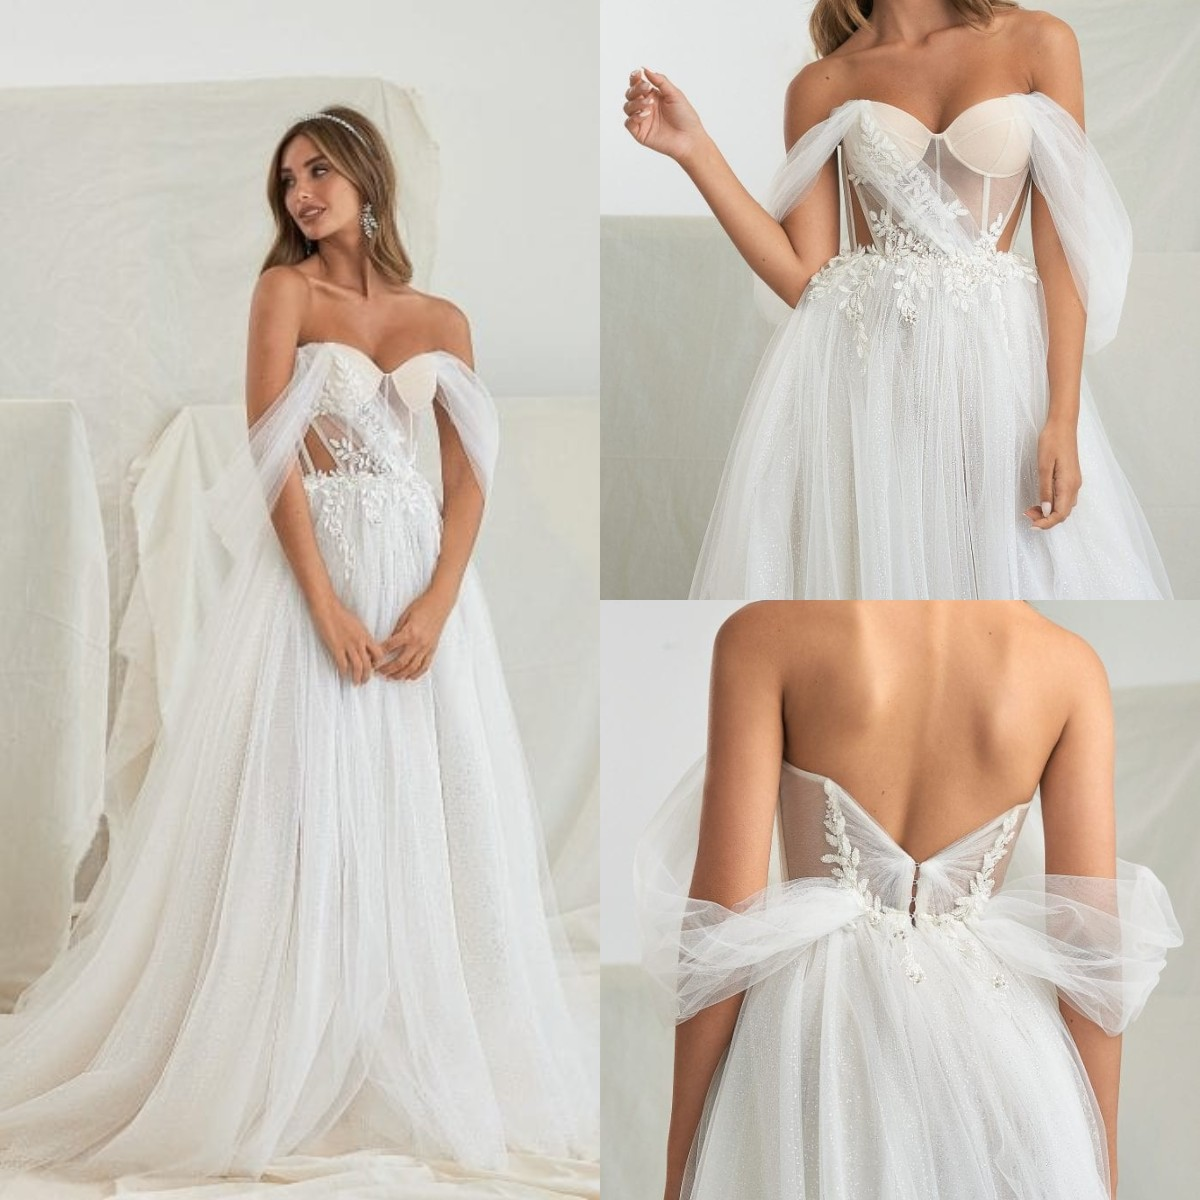 Review 2022 Wedding Dresses Bridal Gowns Lace Appliqued Off The Shoulder Beaded Boho Tulle A Line Country Robes De Mariée